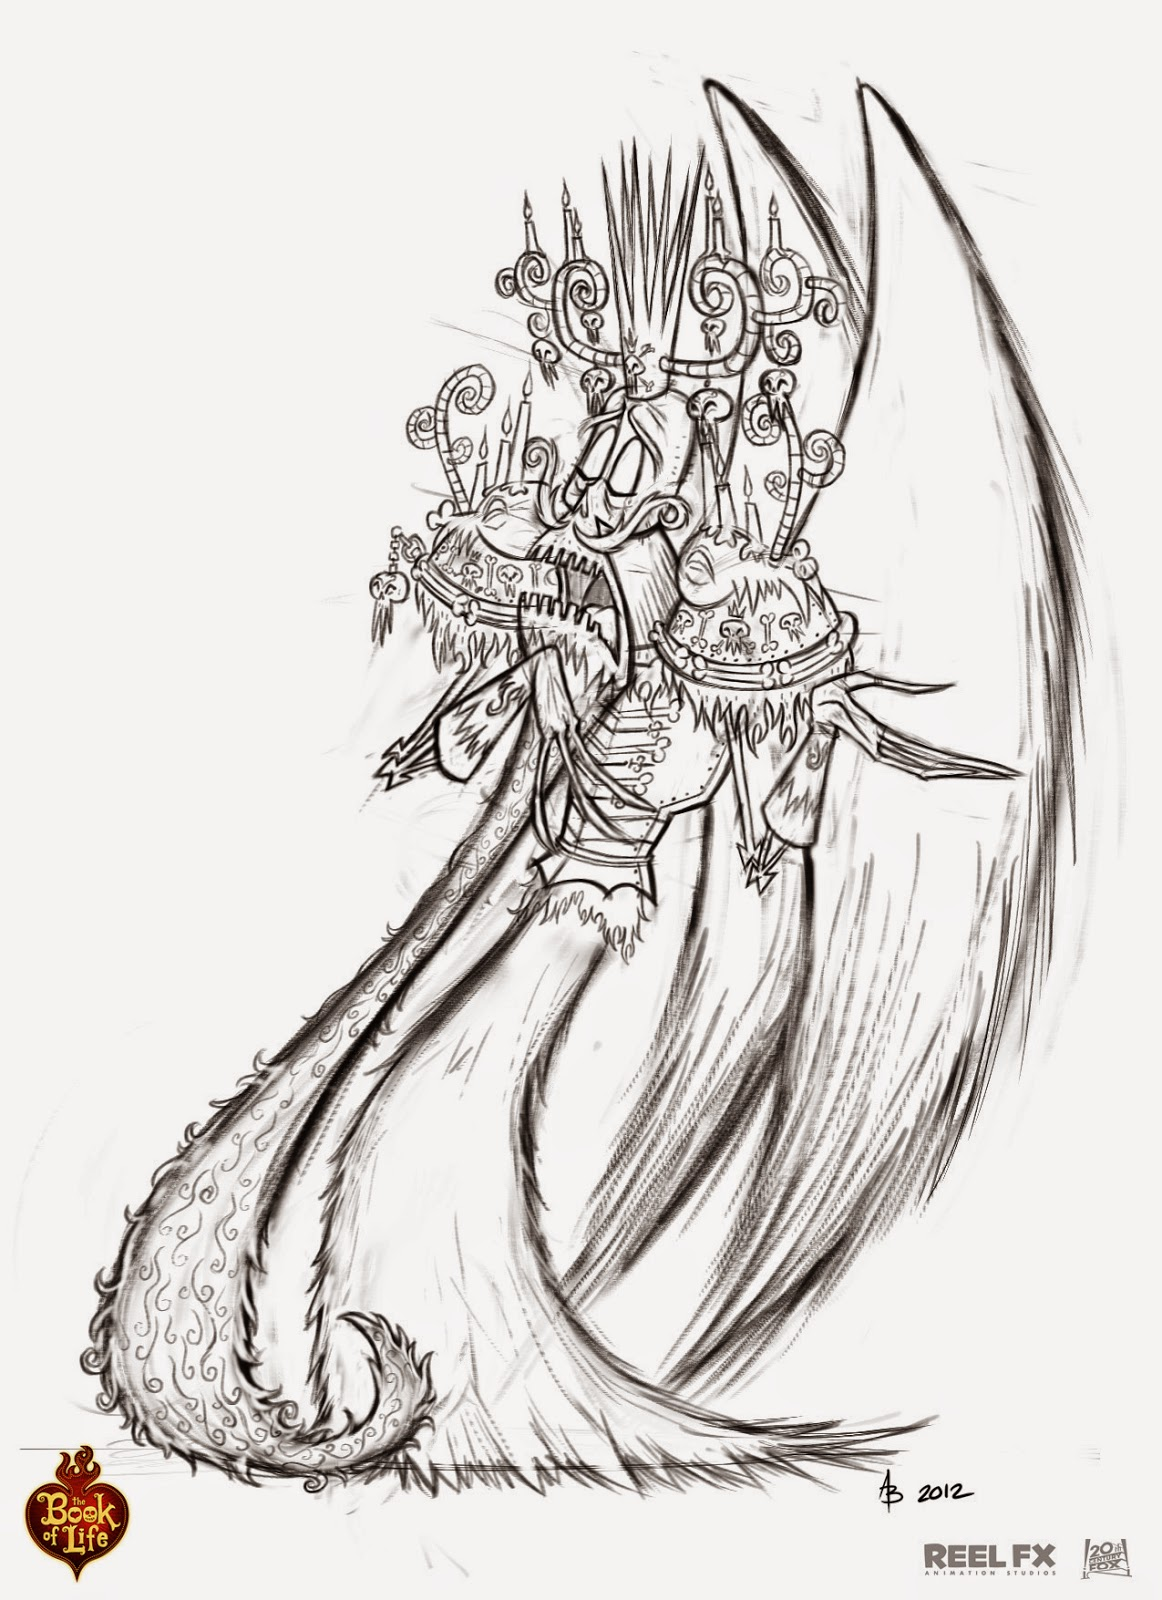 Character Design From Life Drawing : Andy bialk quot the book of life xibalba character poses